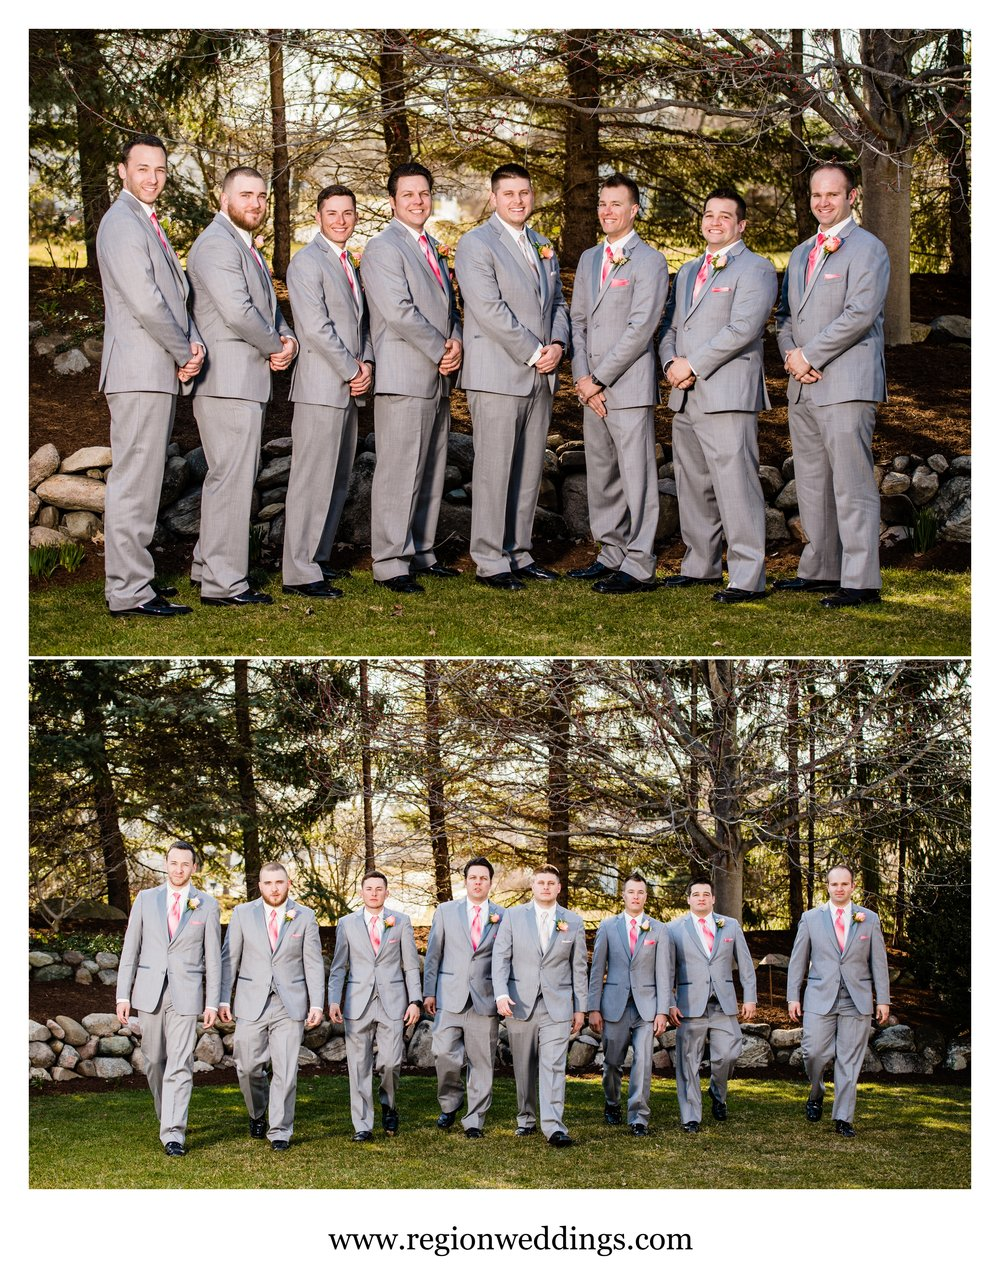 Groomsmen photos at an Aberdeen Manor Spring wedding.